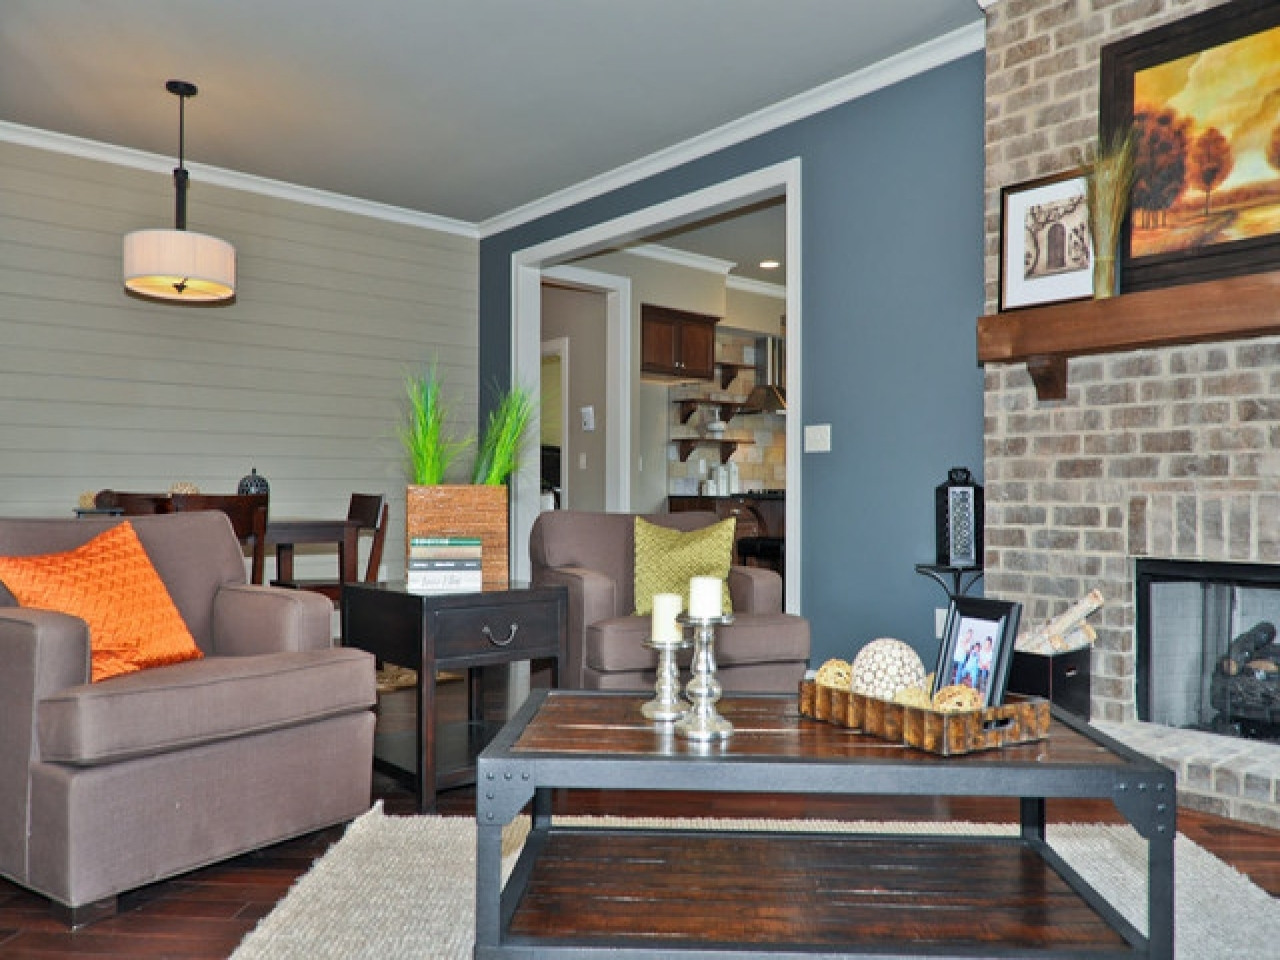 Living Room Blue Walls Light Ideas Wall Decor Color With Brown Within Newest Wall Accents For Tan Room (View 7 of 15)